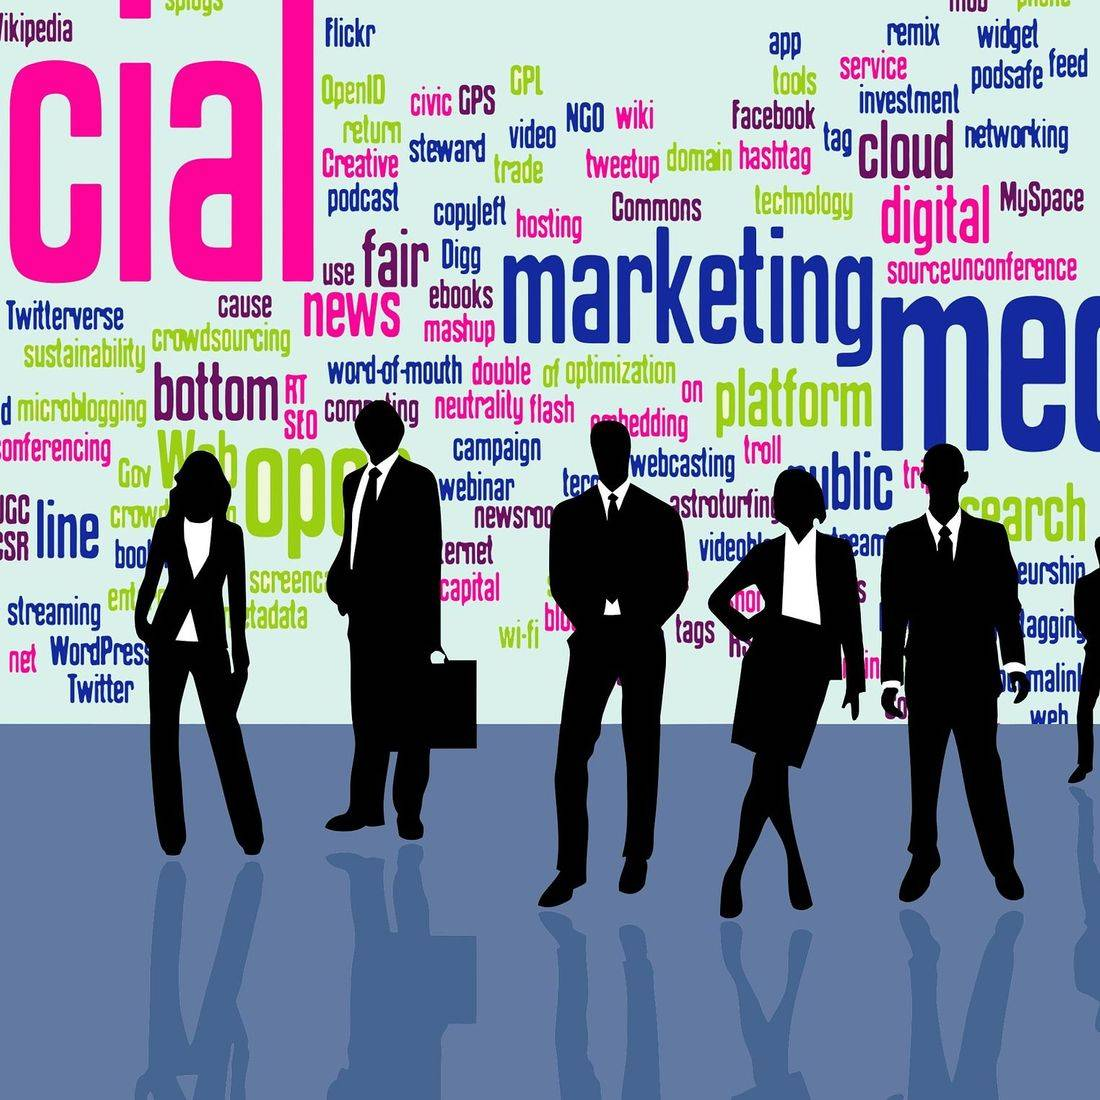 social media marketing, social media insight, marketing advice